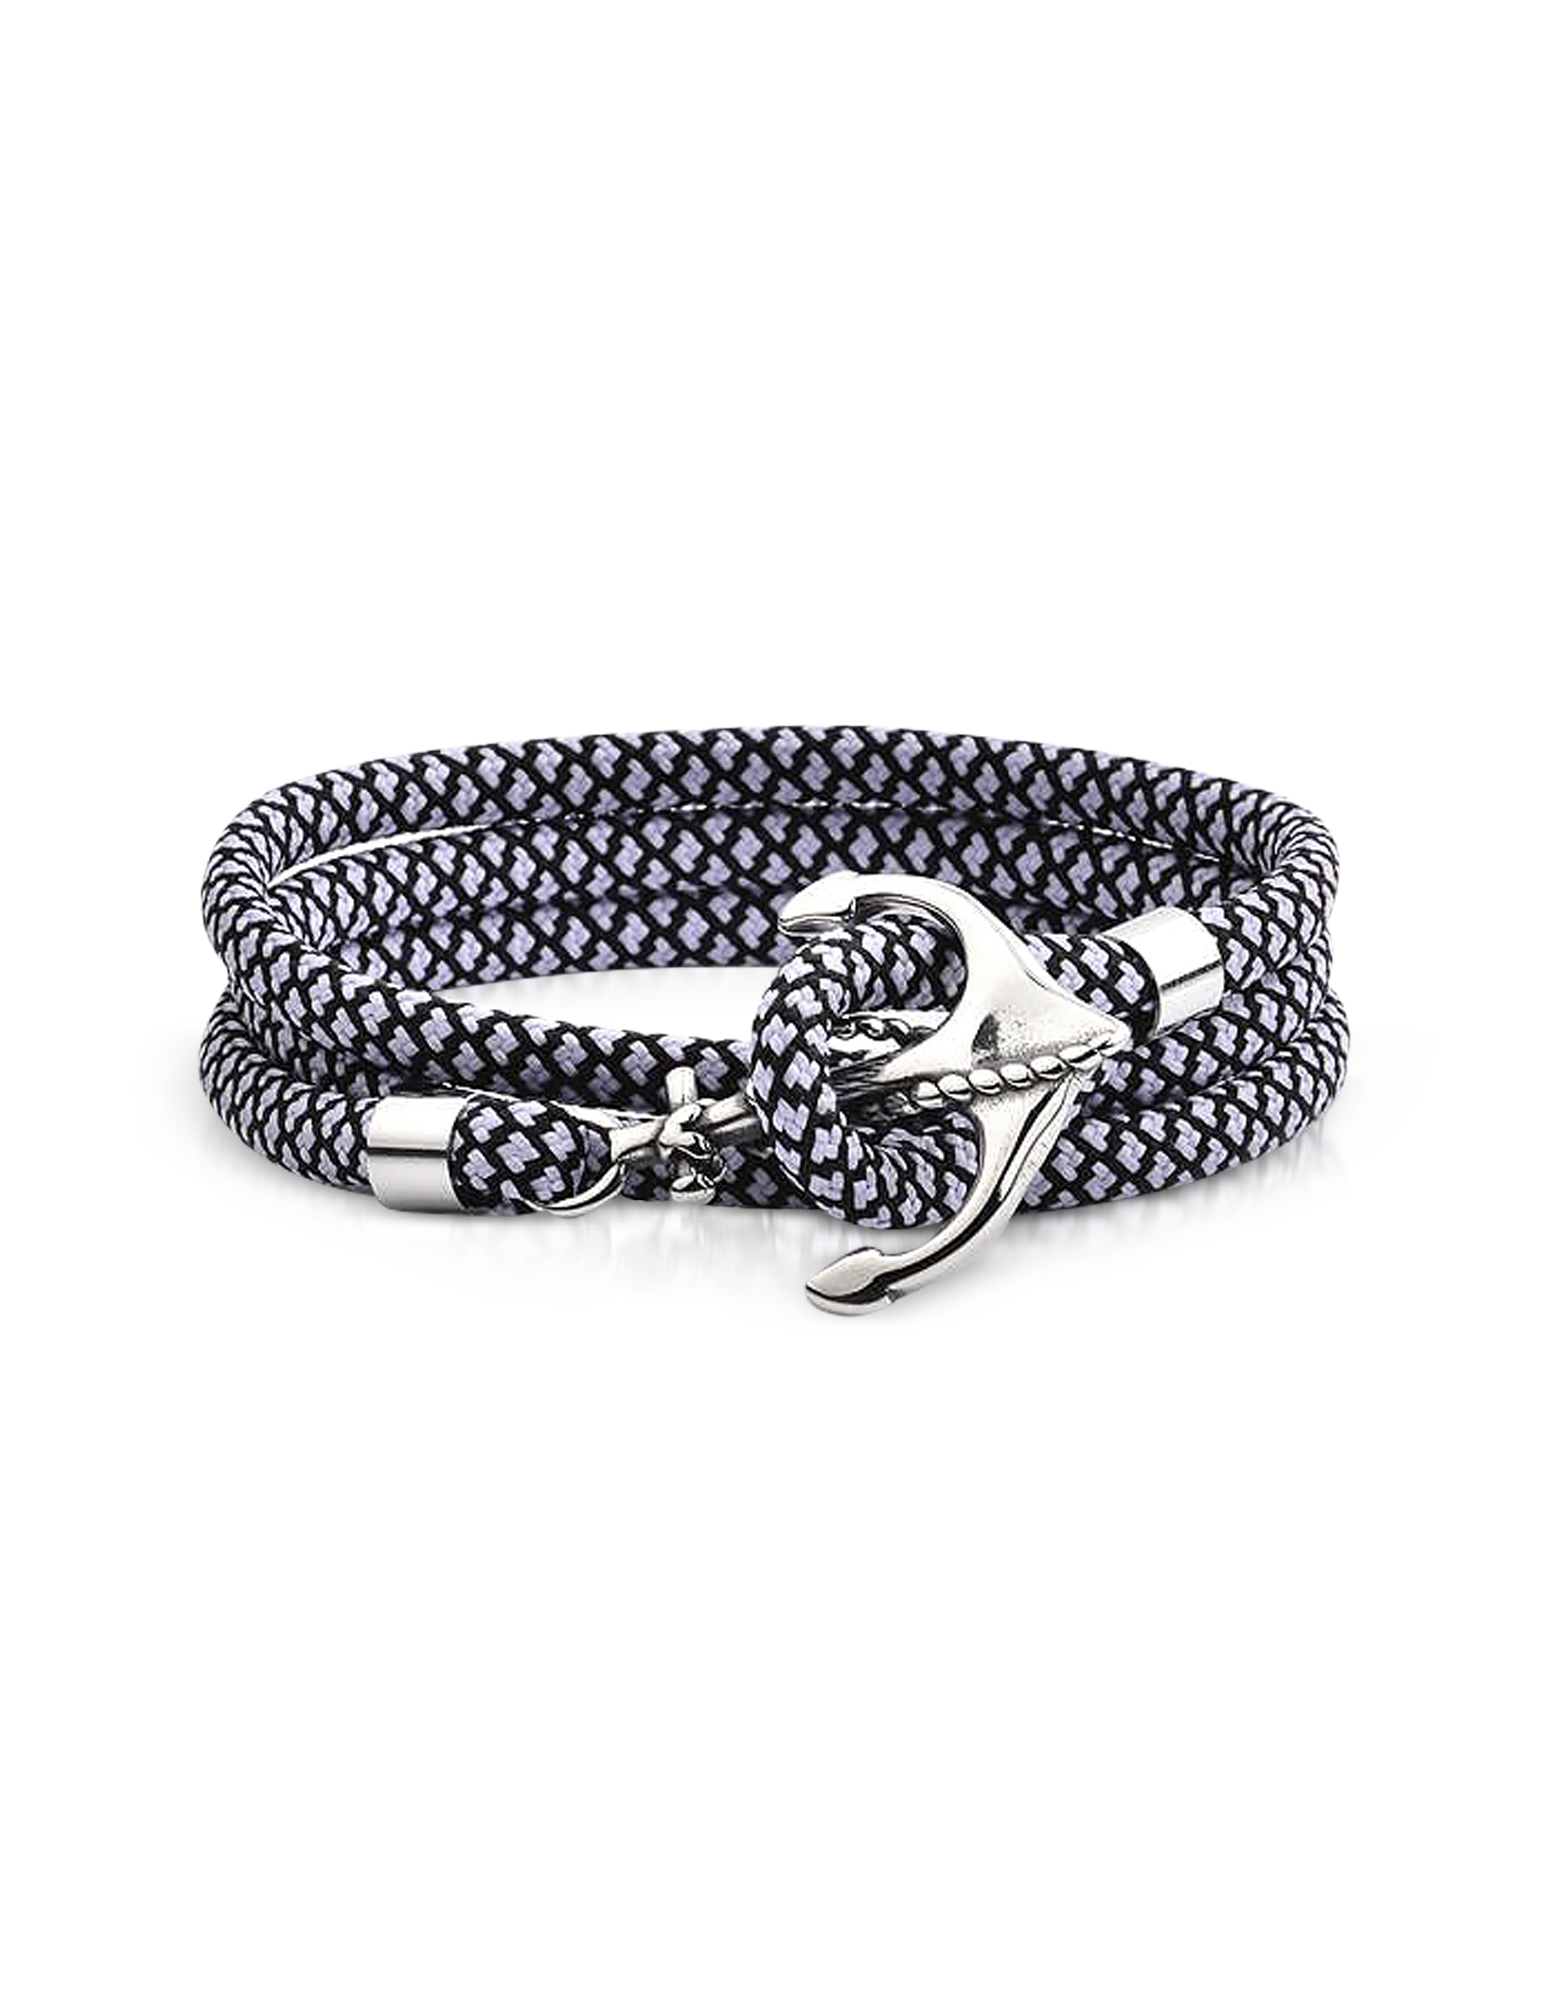 Image of Black and White Rope Triple Bracelet w/Anchor